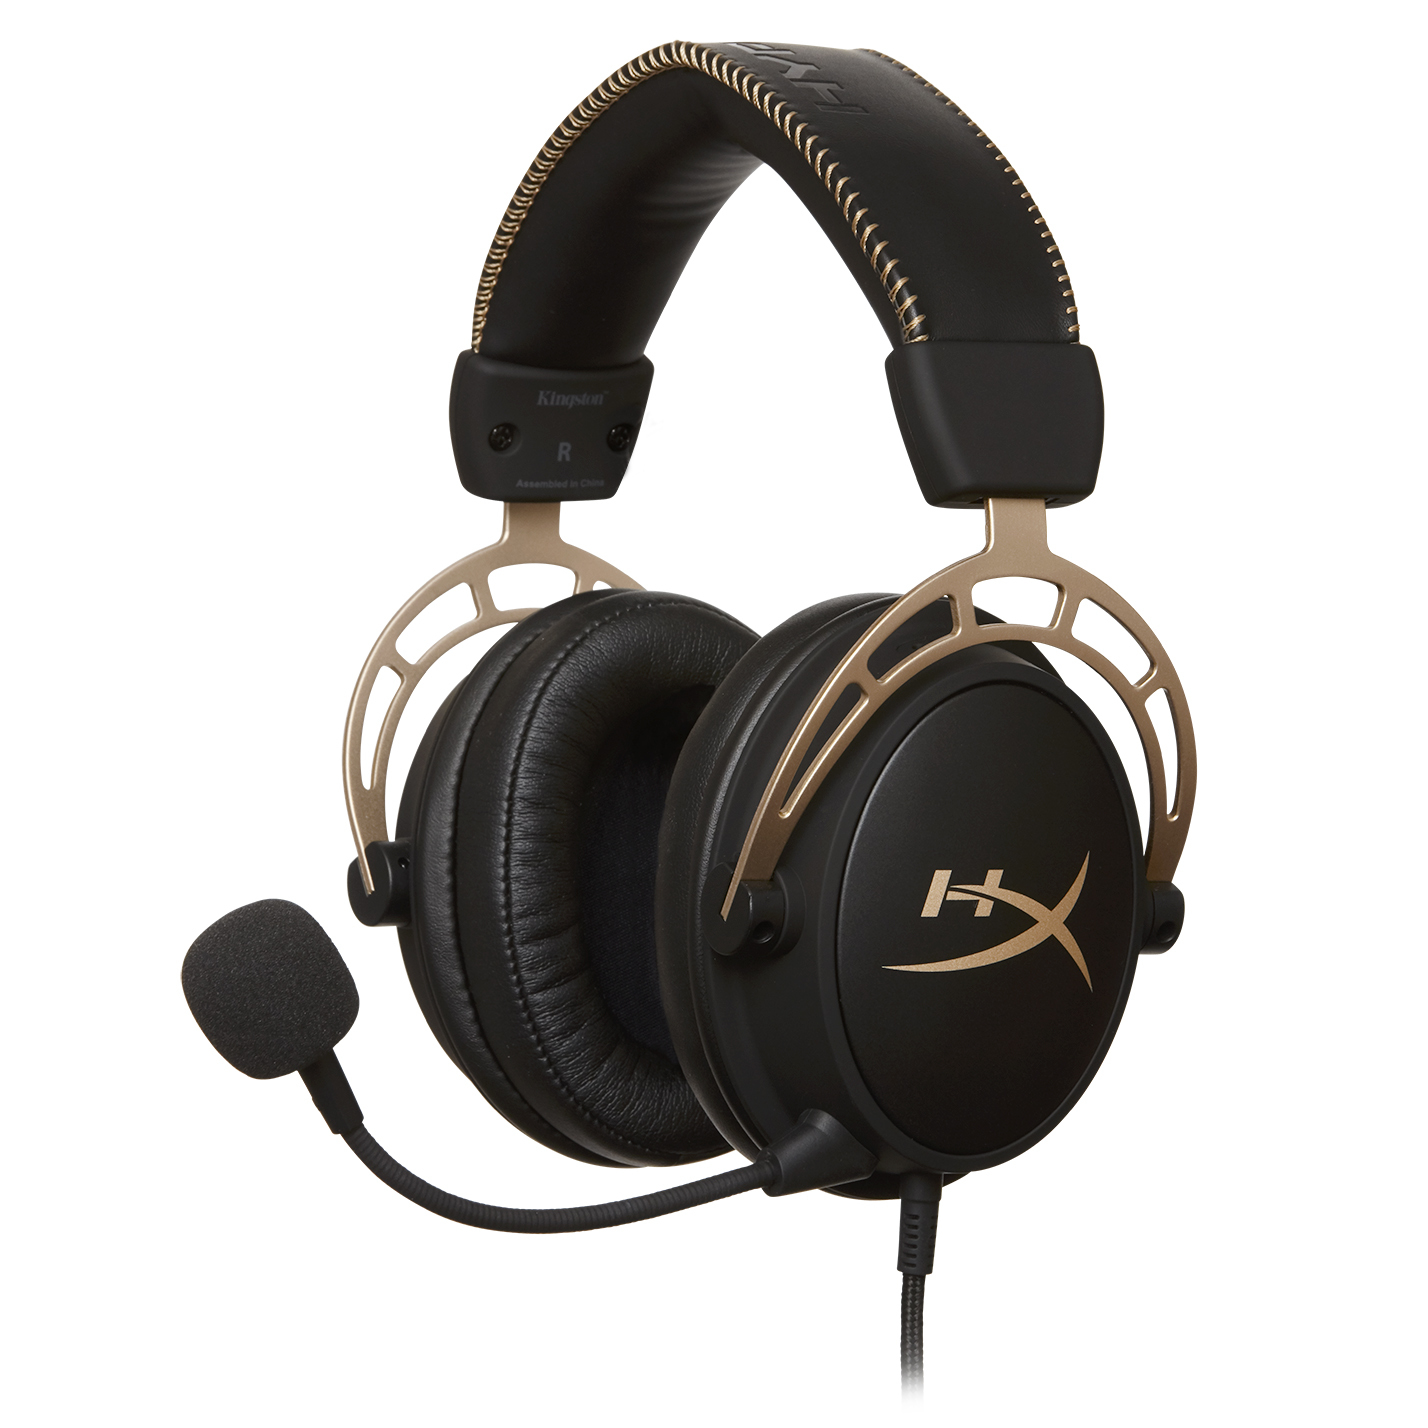 Cost U Less >> HyperX Debuts Cloud Alpha Gold Edition Gaming Headset - Legit Reviews